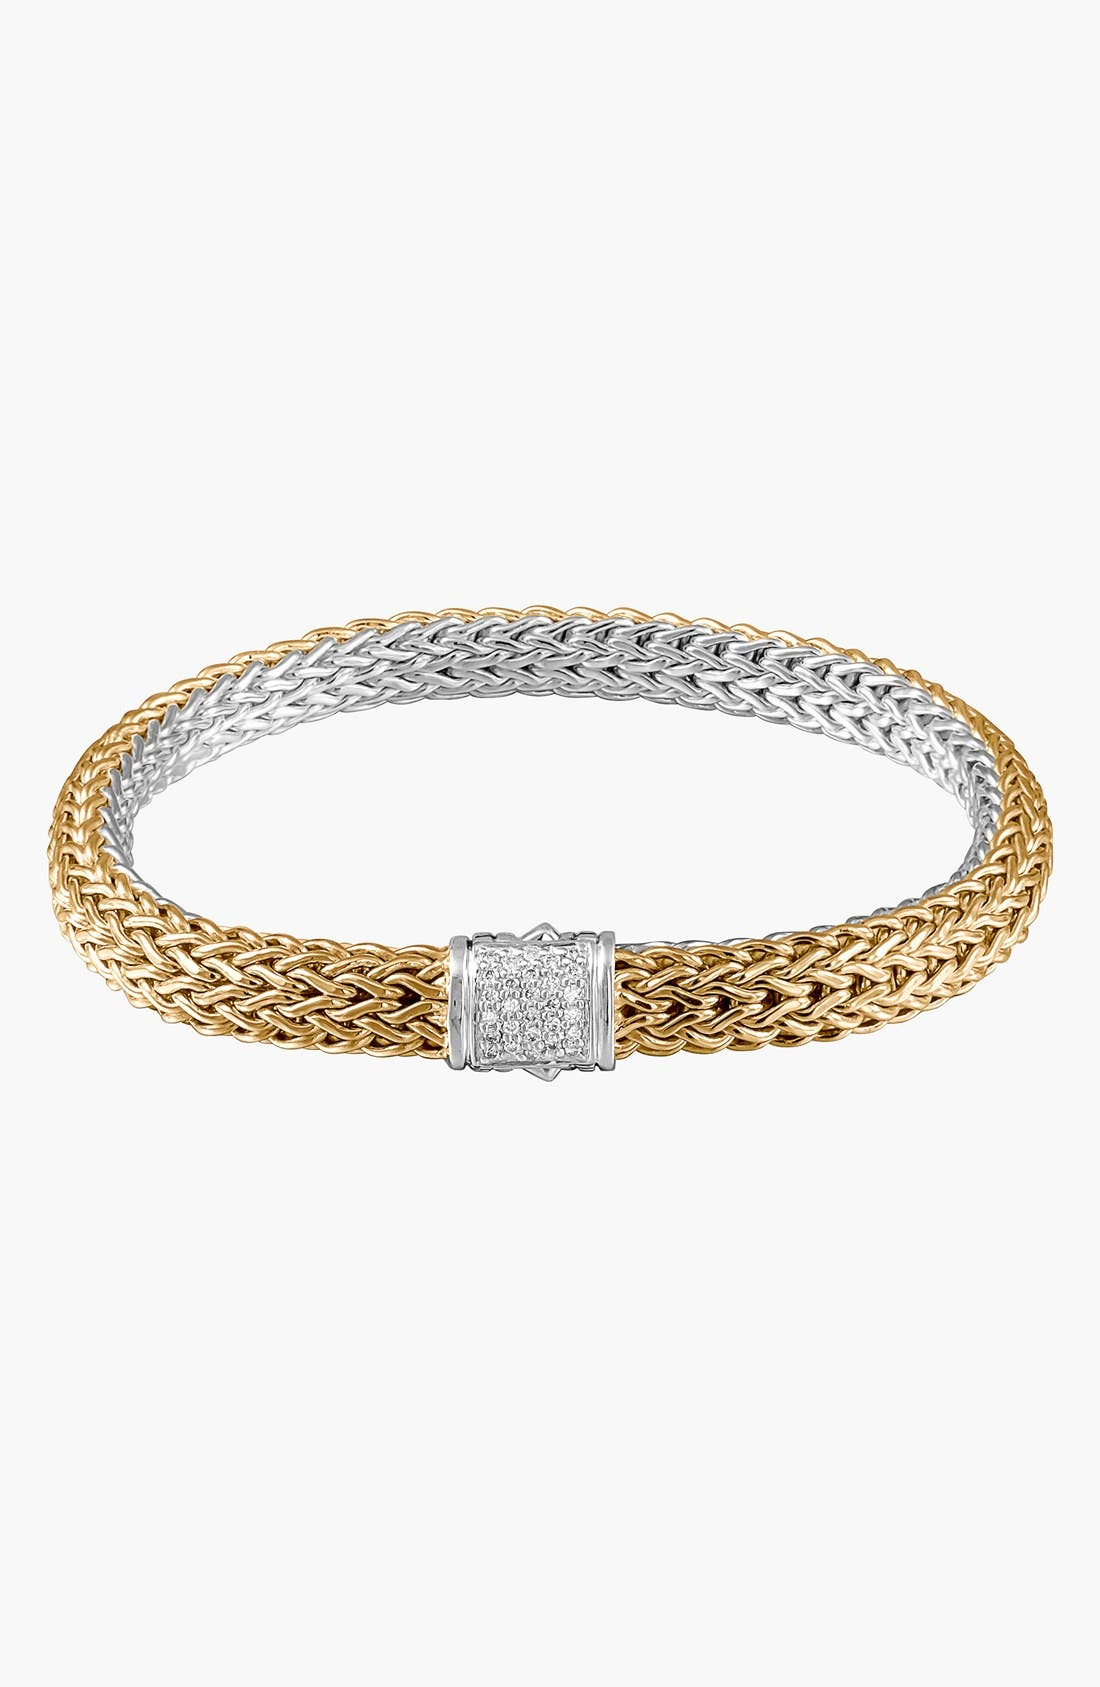 Alternate Image 1 Selected - John Hardy 'Classic Chain' Diamond Two-Tone Bracelet